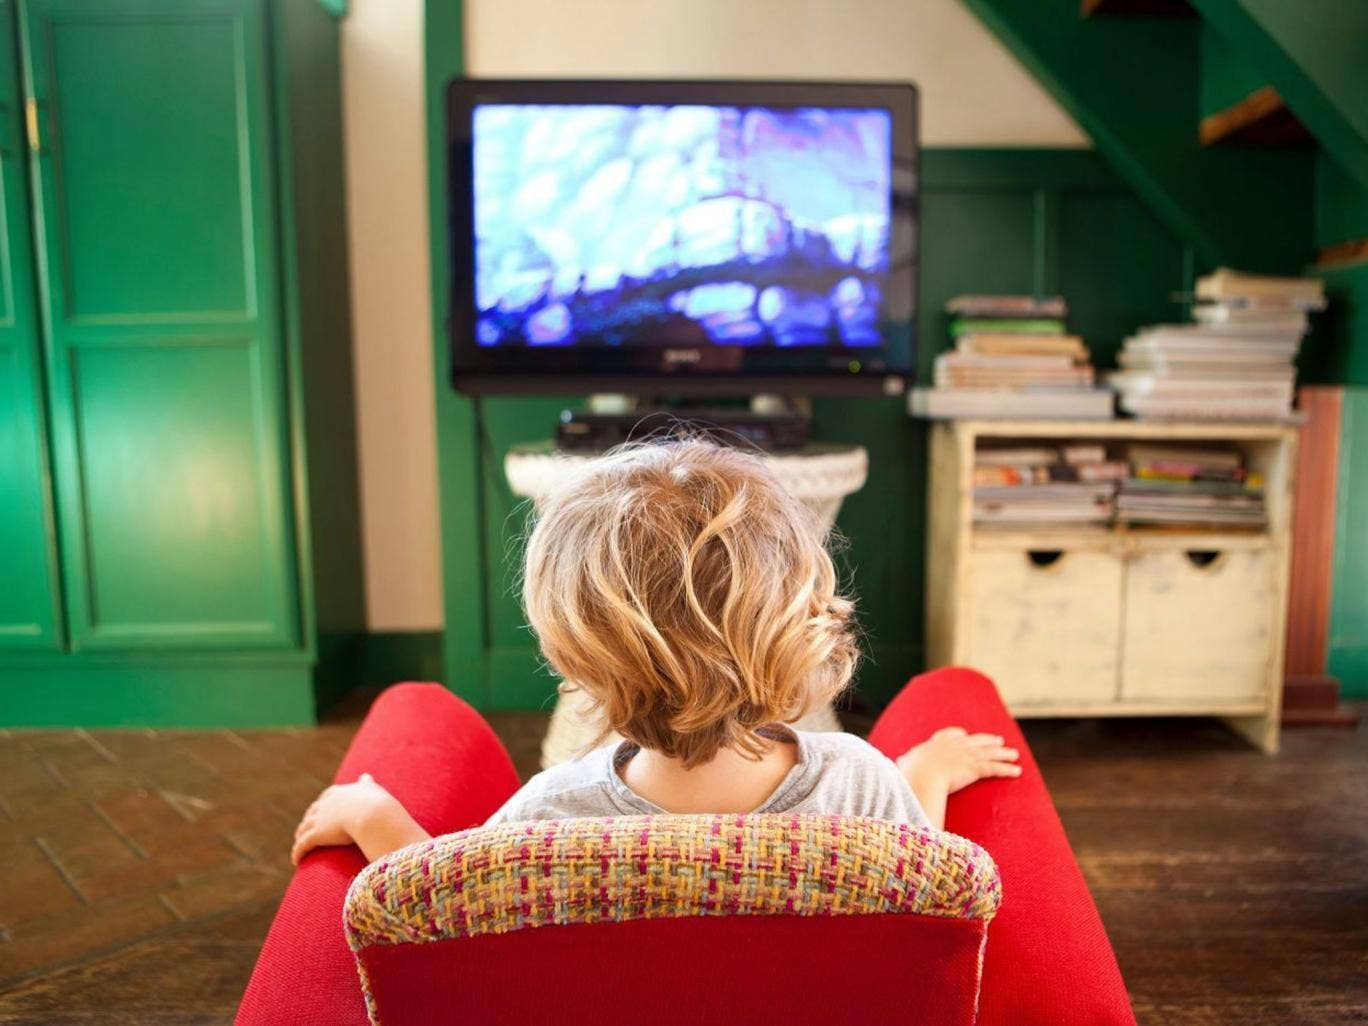 Raising the stakes: TV adverts for gambling have increased by 600 per cent